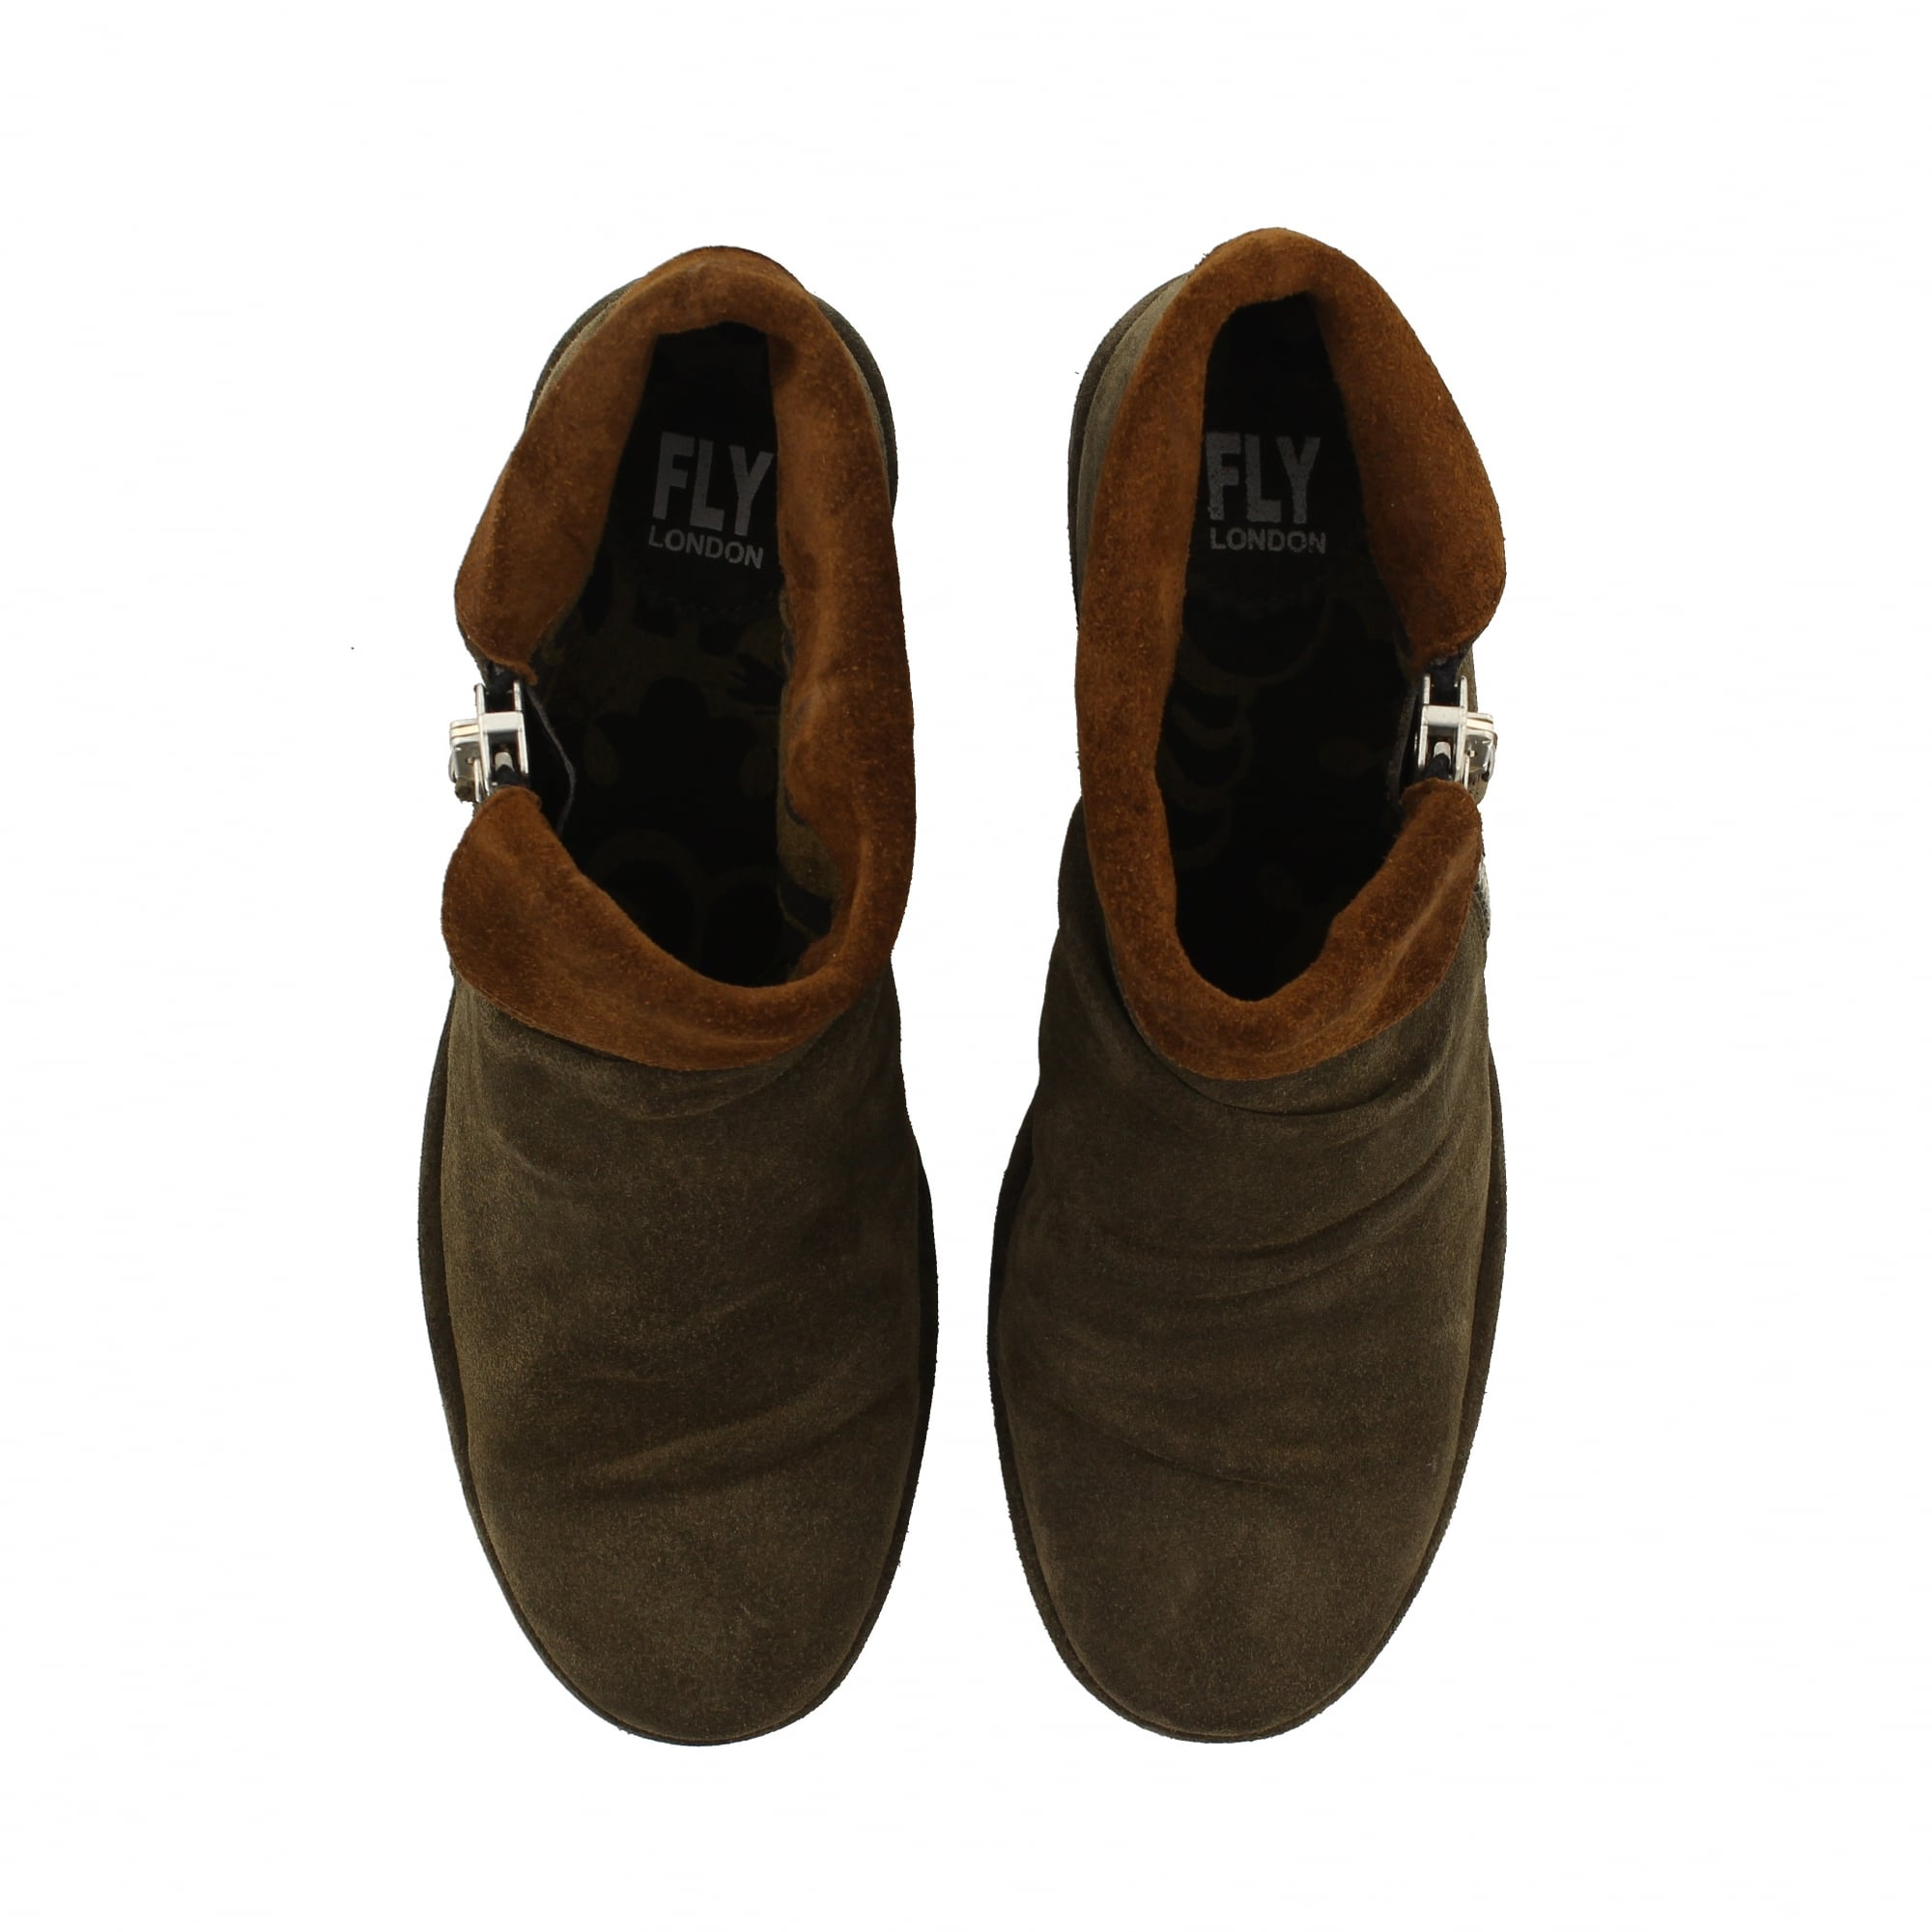 best wholesaler authorized site get cheap Fly London Yoxi Ankle Boots Taupe   Fly London Sale   Rogerson Shoes